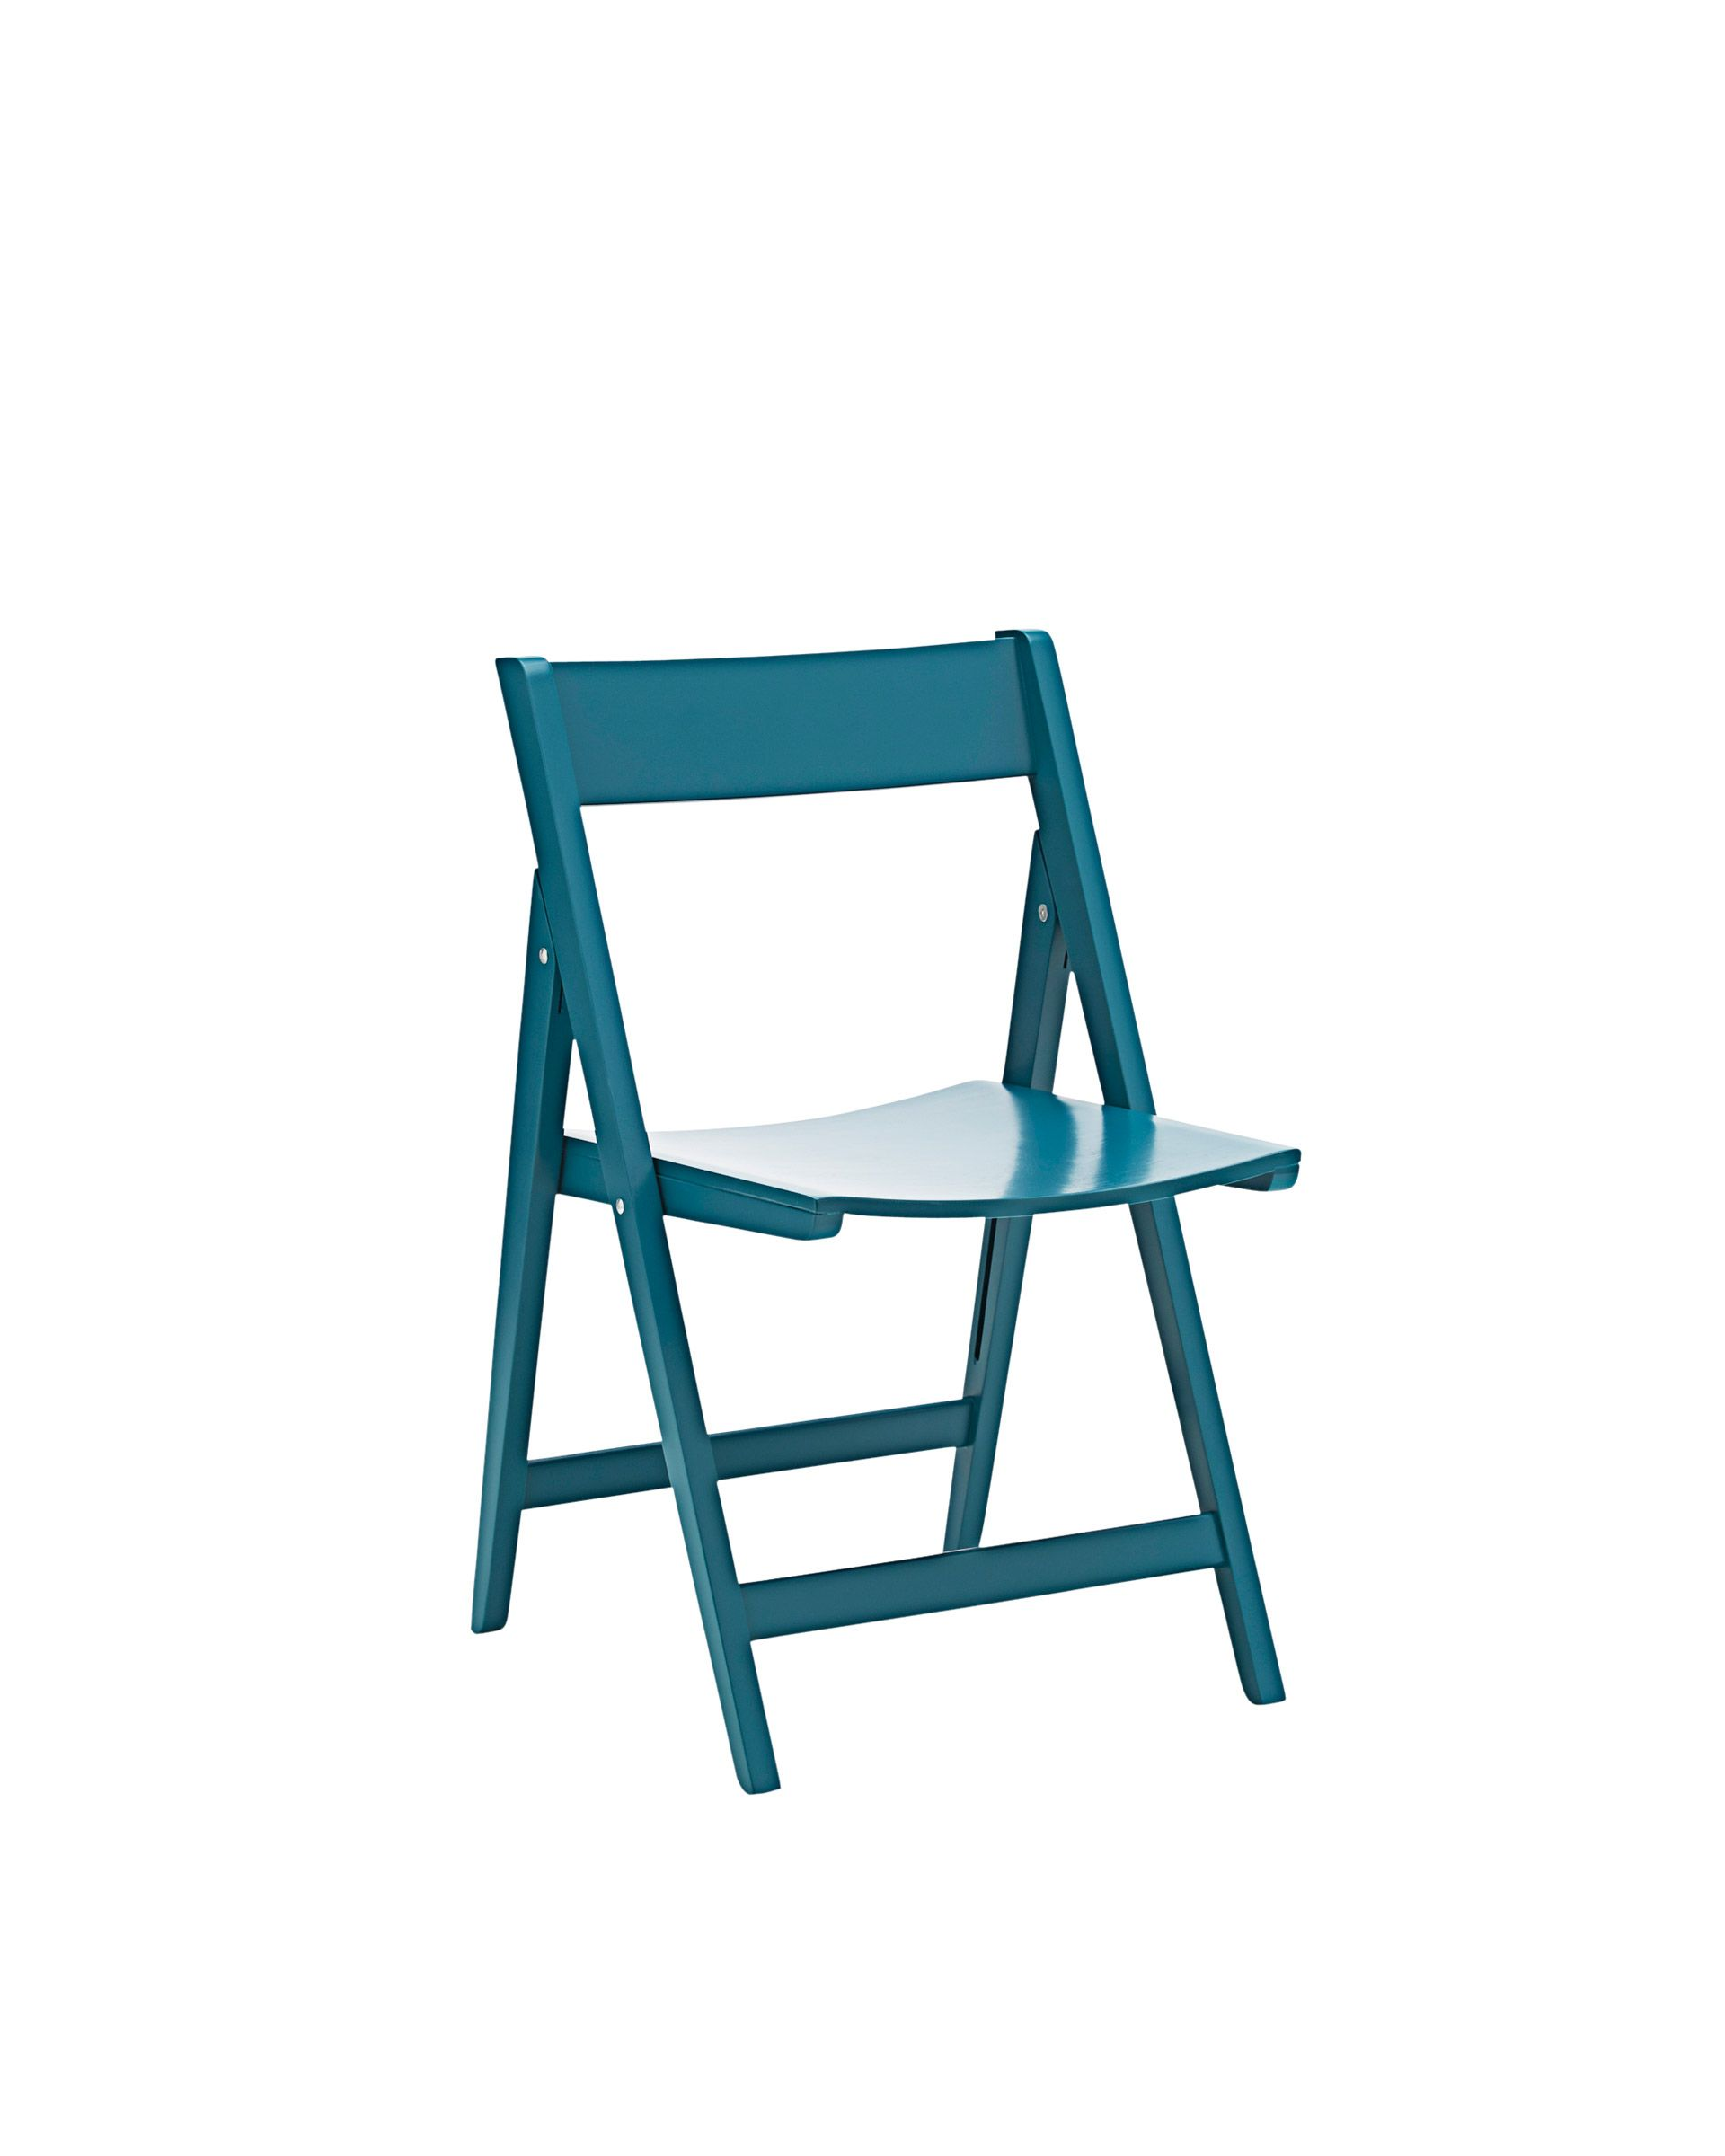 crate and barrel spare chair